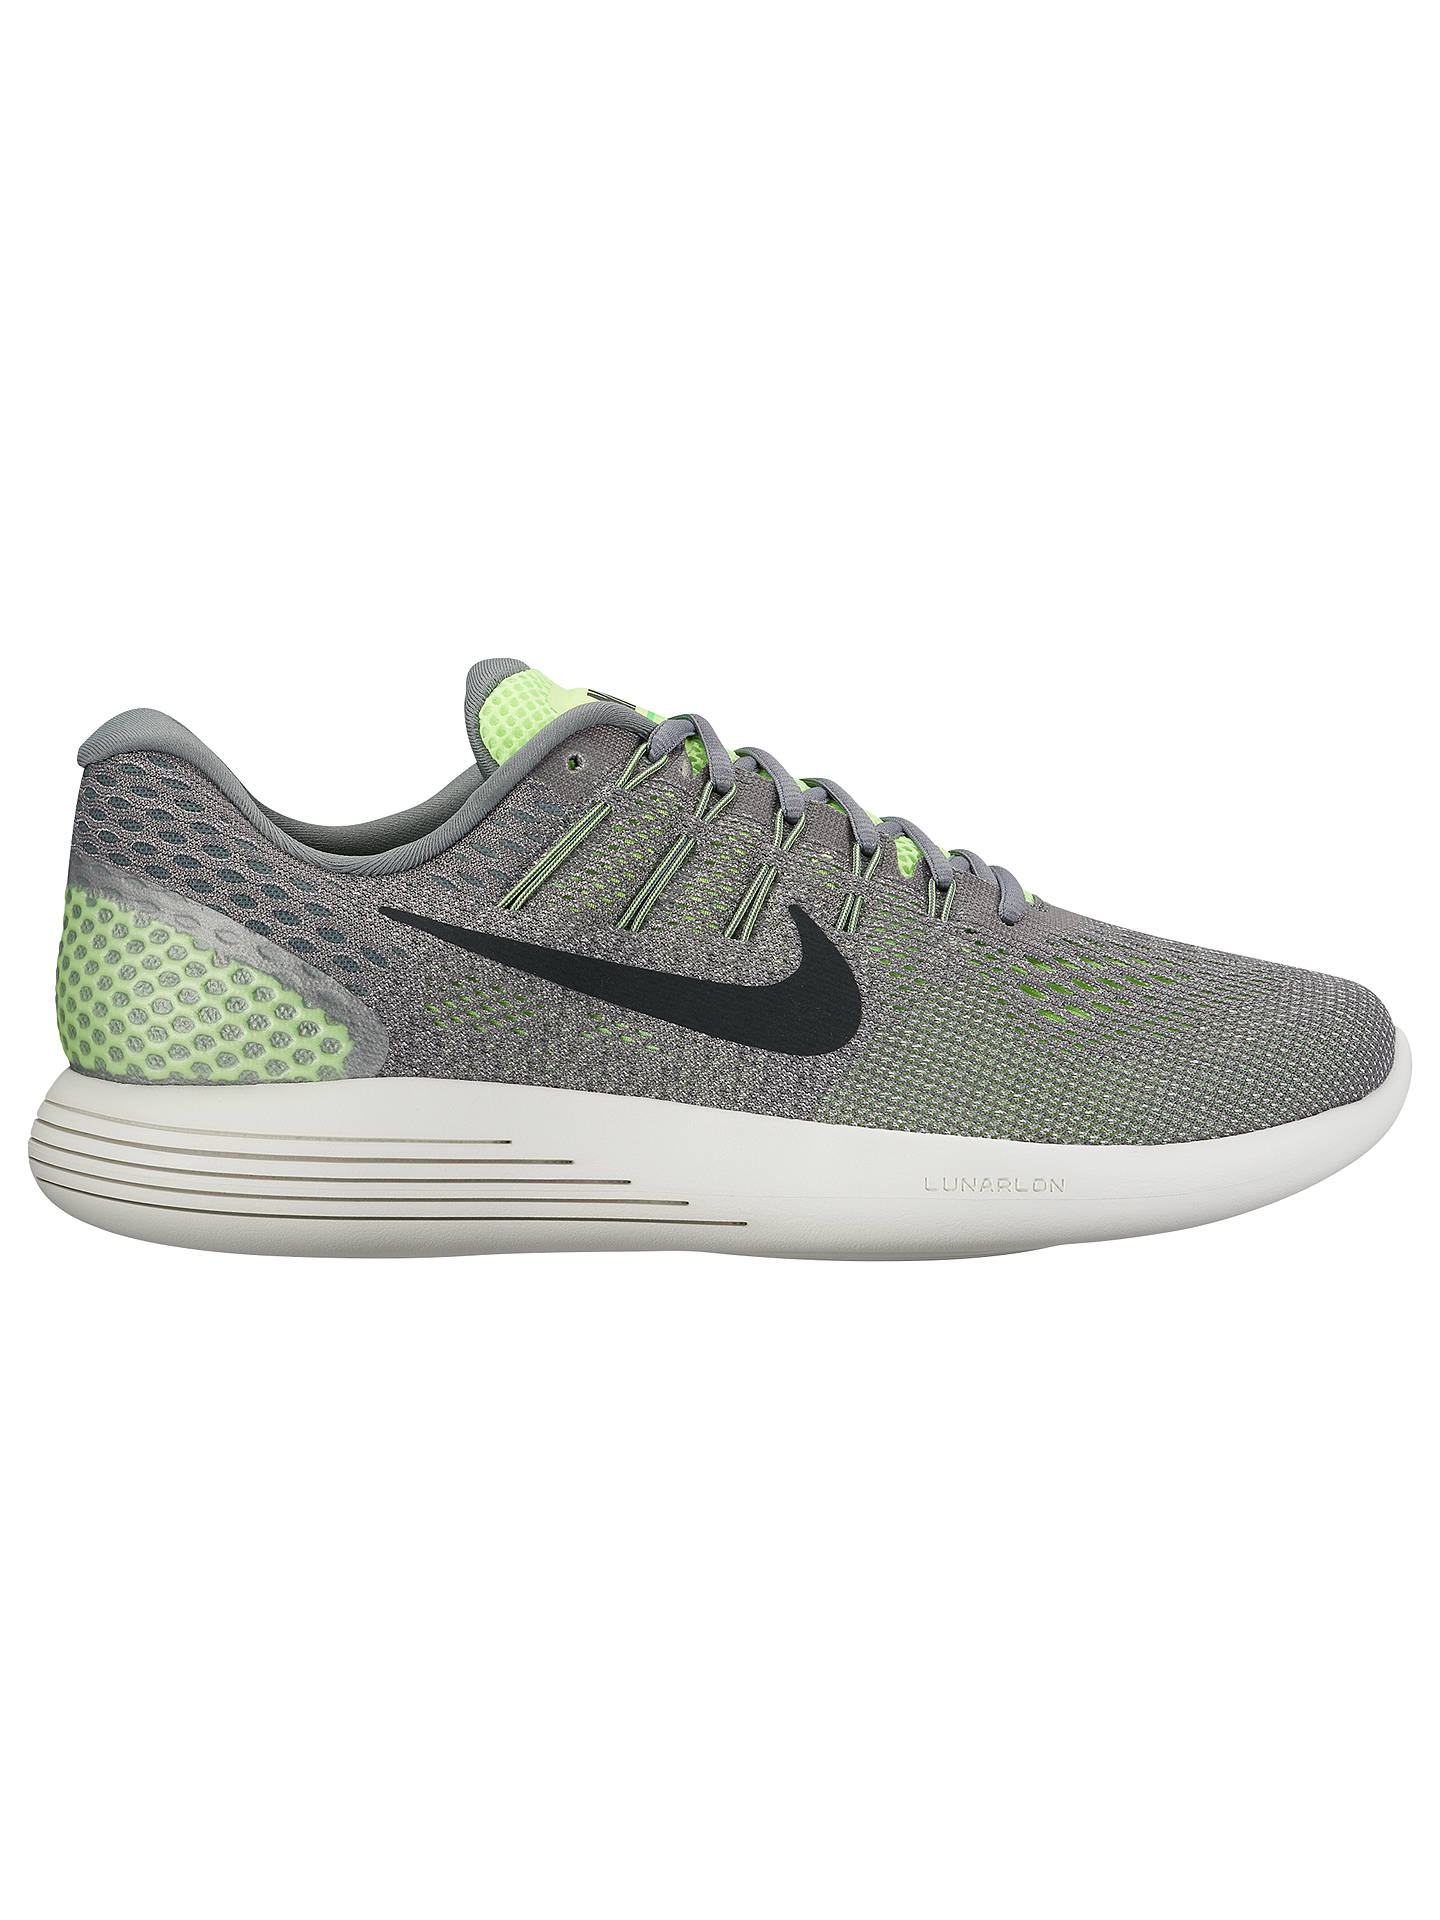 new arrivals 2ffa8 facad ... real buynike lunarglide 8 mens running shoes ghost green cool grey 7  online at 244e1 82593